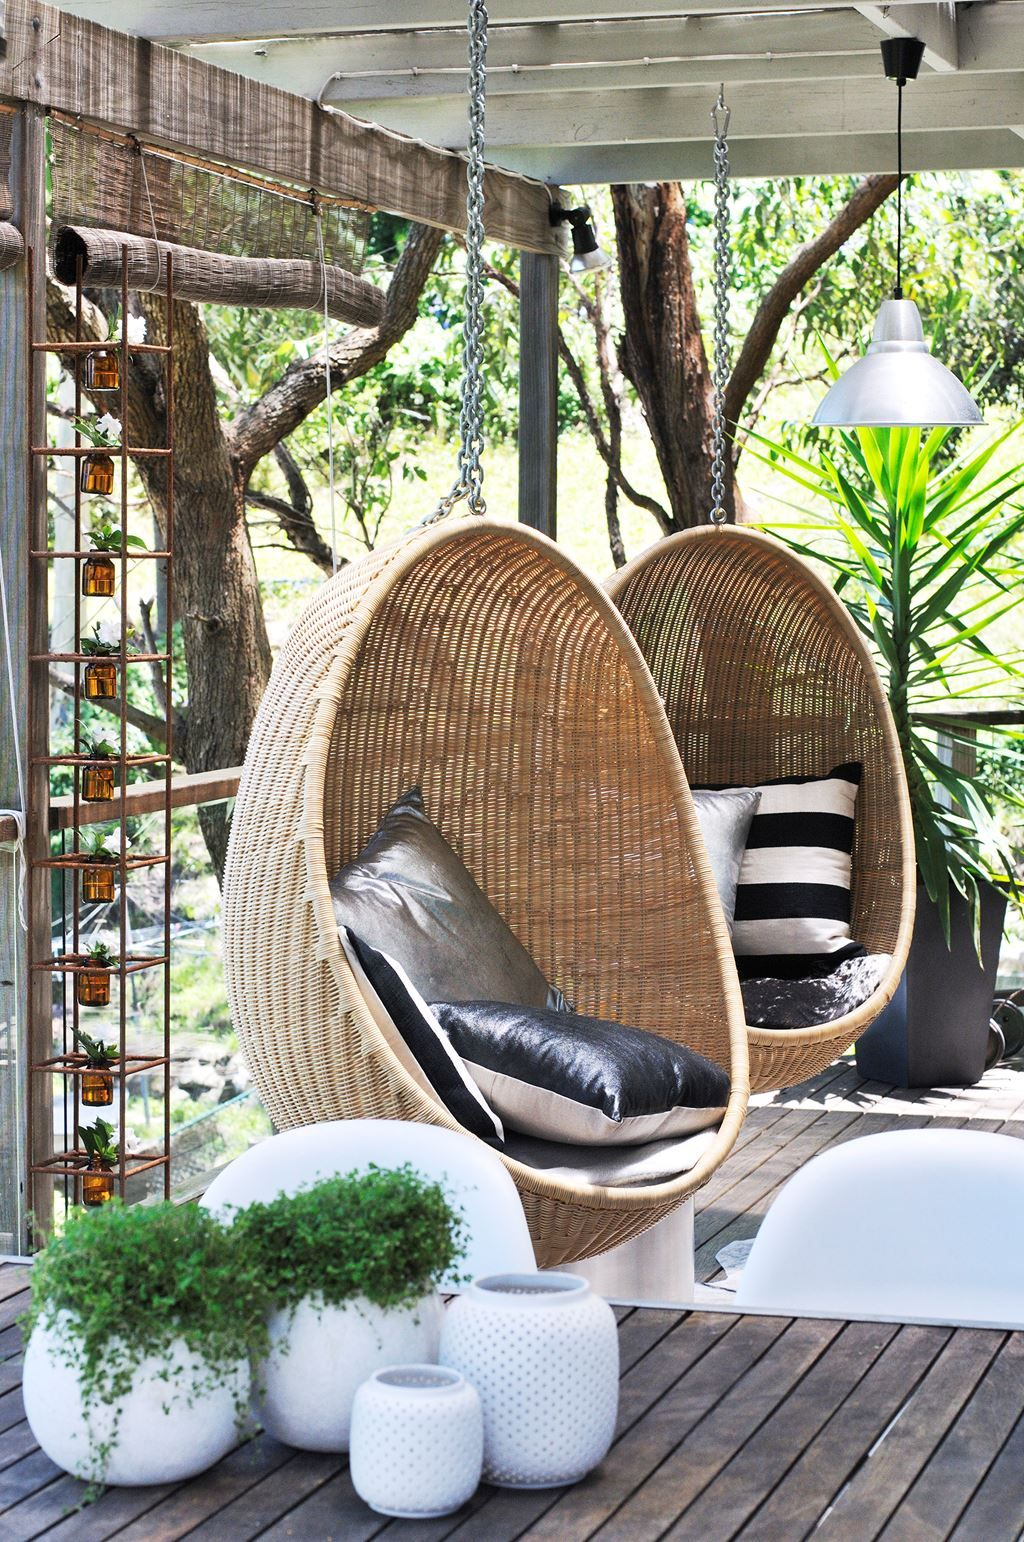 Outdoor cane and wicker outdoor furniture like this hanging egg chair has a resort feel creating relaxed elegance that invites people outside